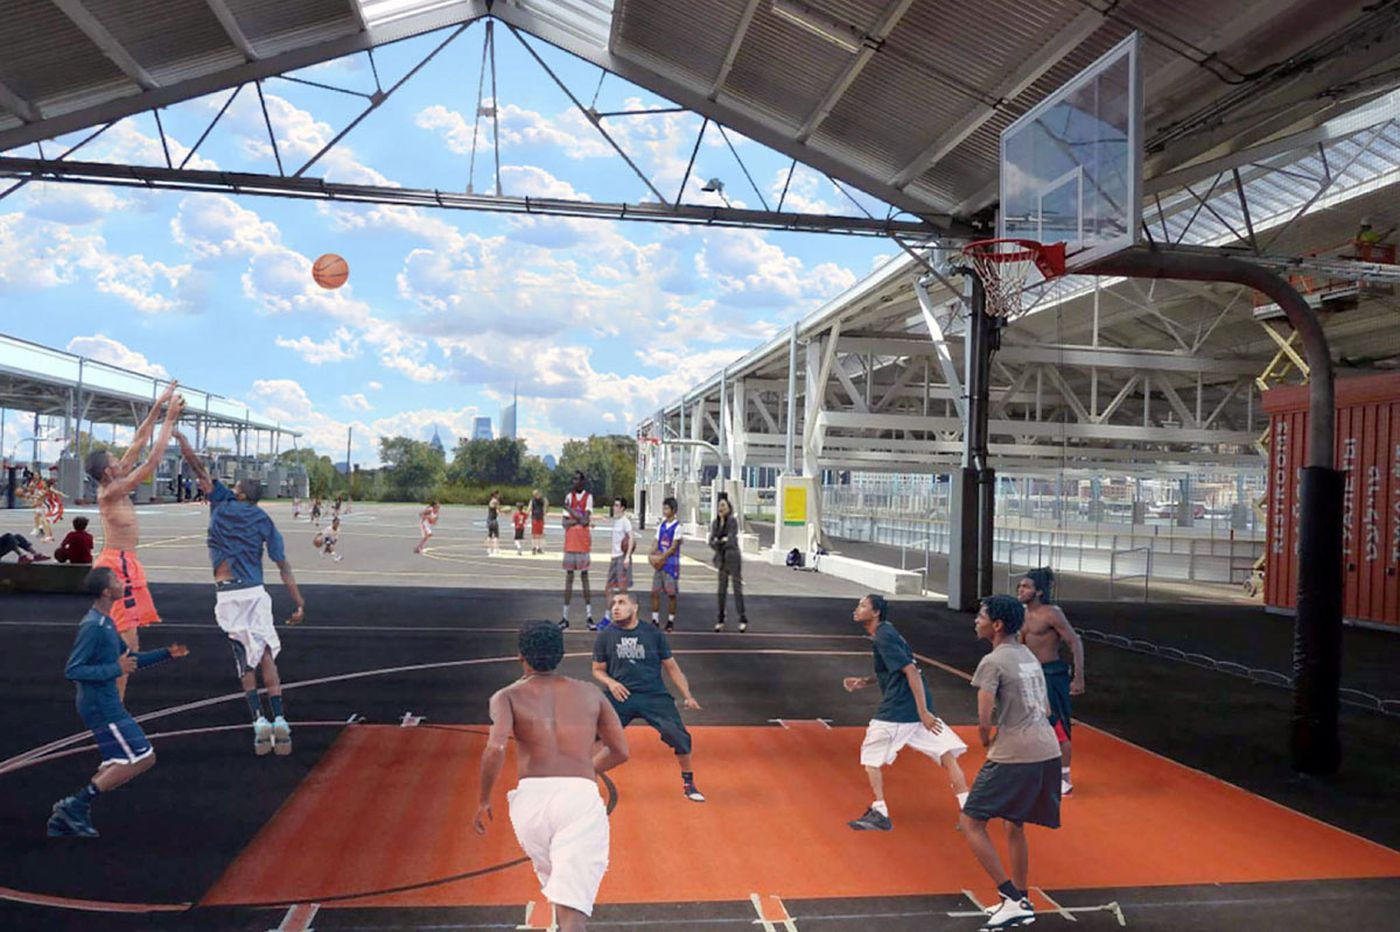 Group aims to raise $25M for youth sports-education center in Logan